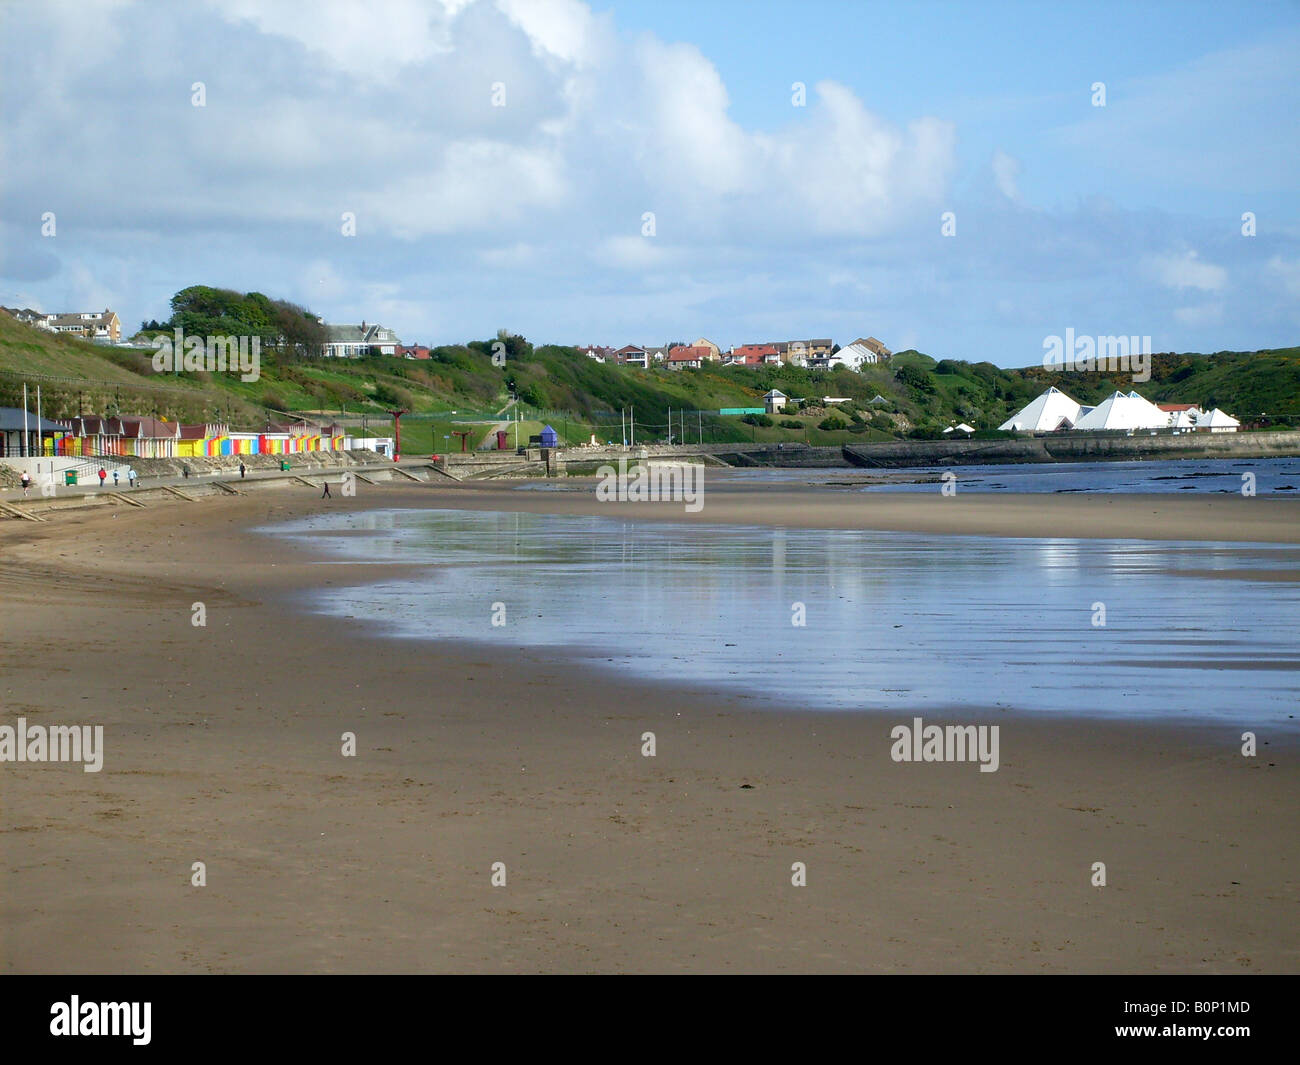 General view of Scarborough North Bay beach, Scarborough, North Yorkshire, England. - Stock Image